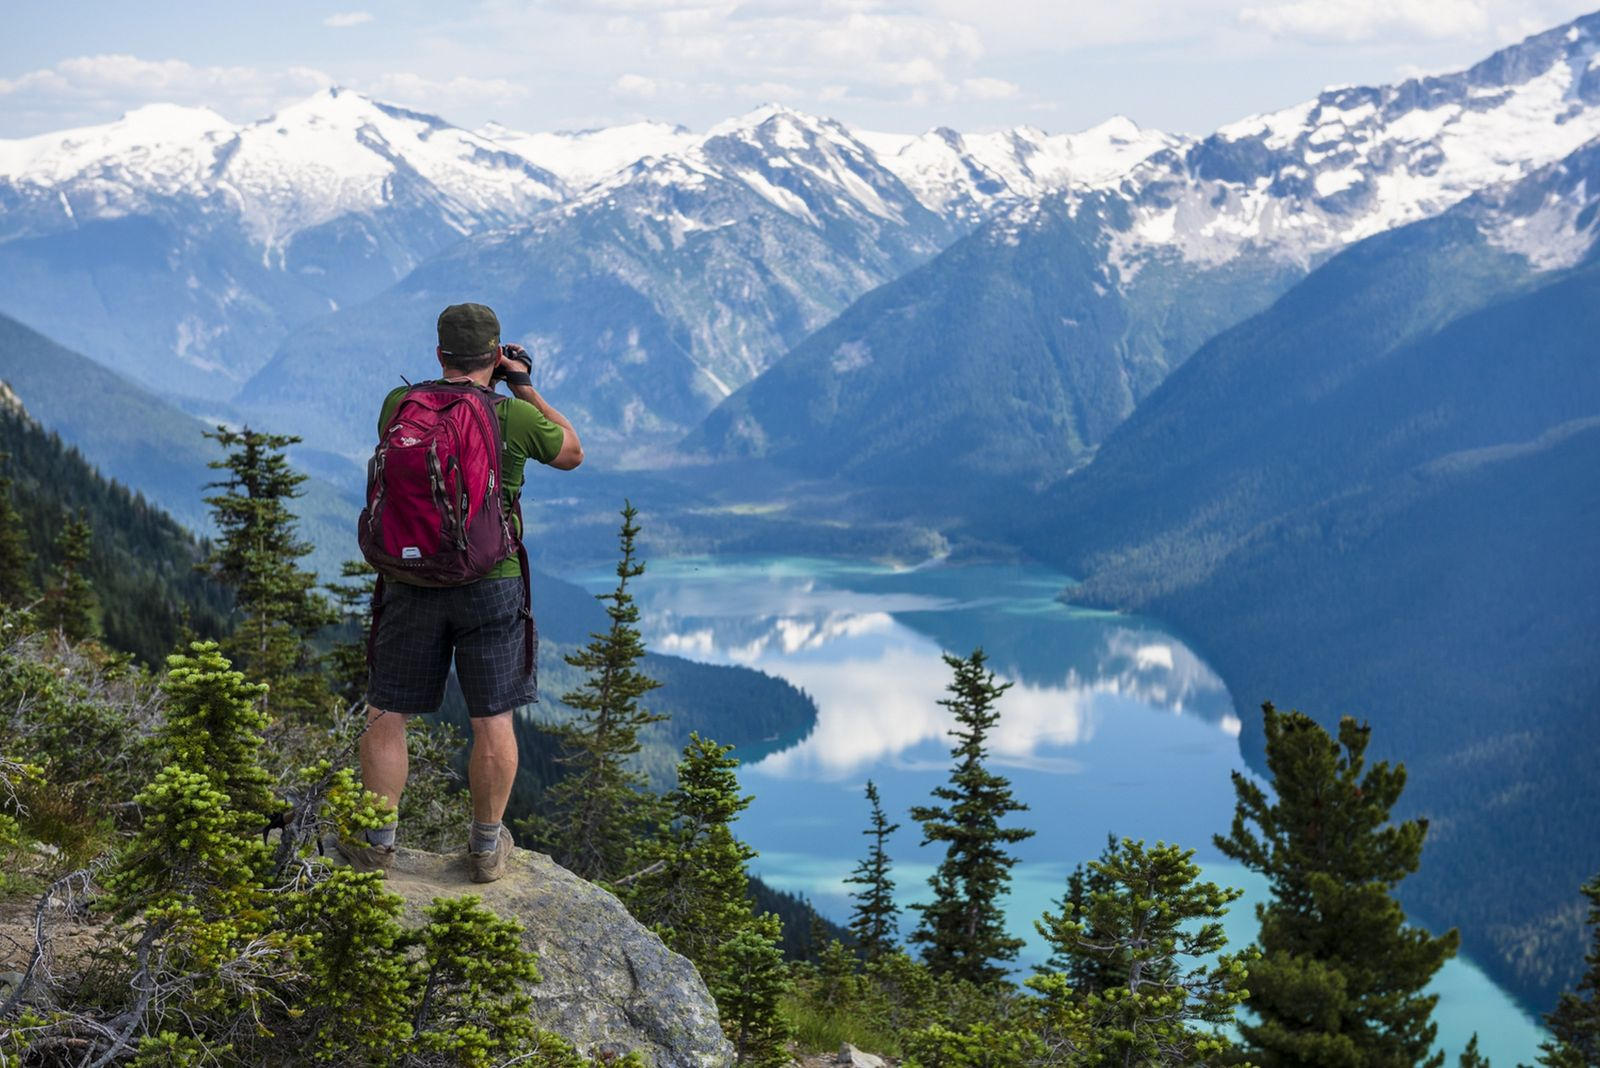 The High Note Trail offers the most scenic view of Cheakamus Lake in Garibaldi Provincial Park.